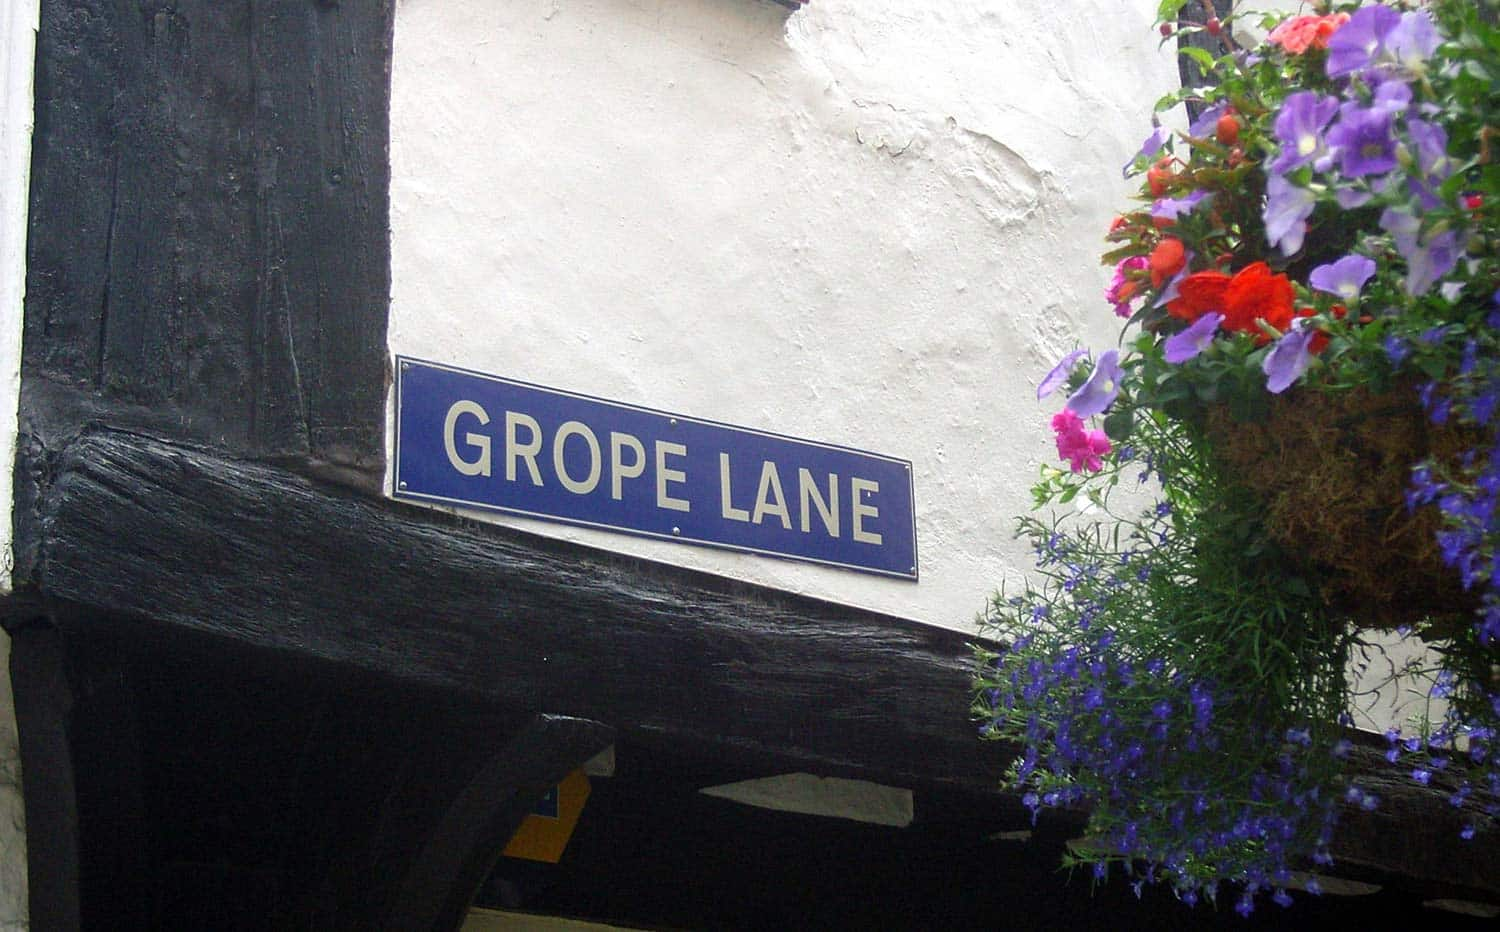 Grope Lane in Shrewsbury